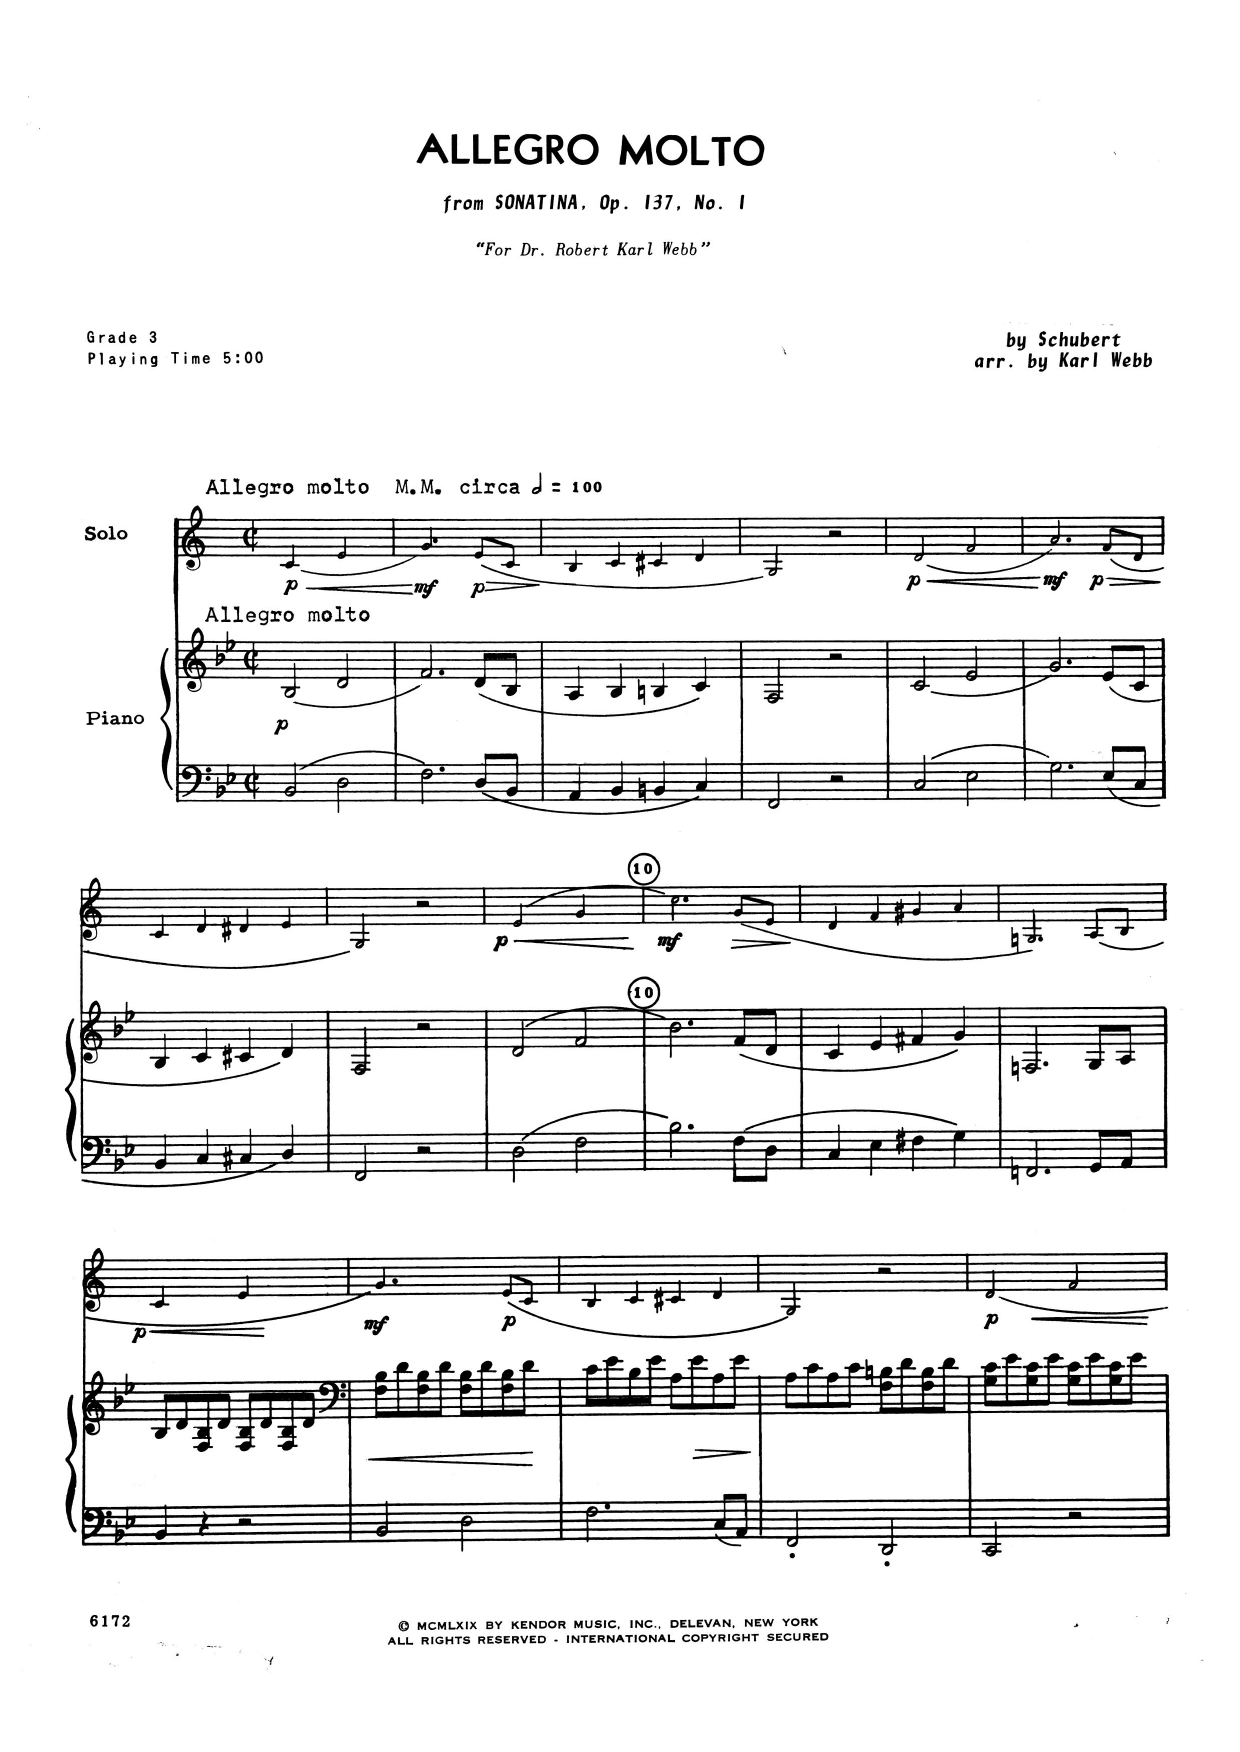 Karl Webb Allegro Molto (from Sonatina, Opus 137, No. 1) - Piano Accompaniment sheet music notes and chords. Download Printable PDF.